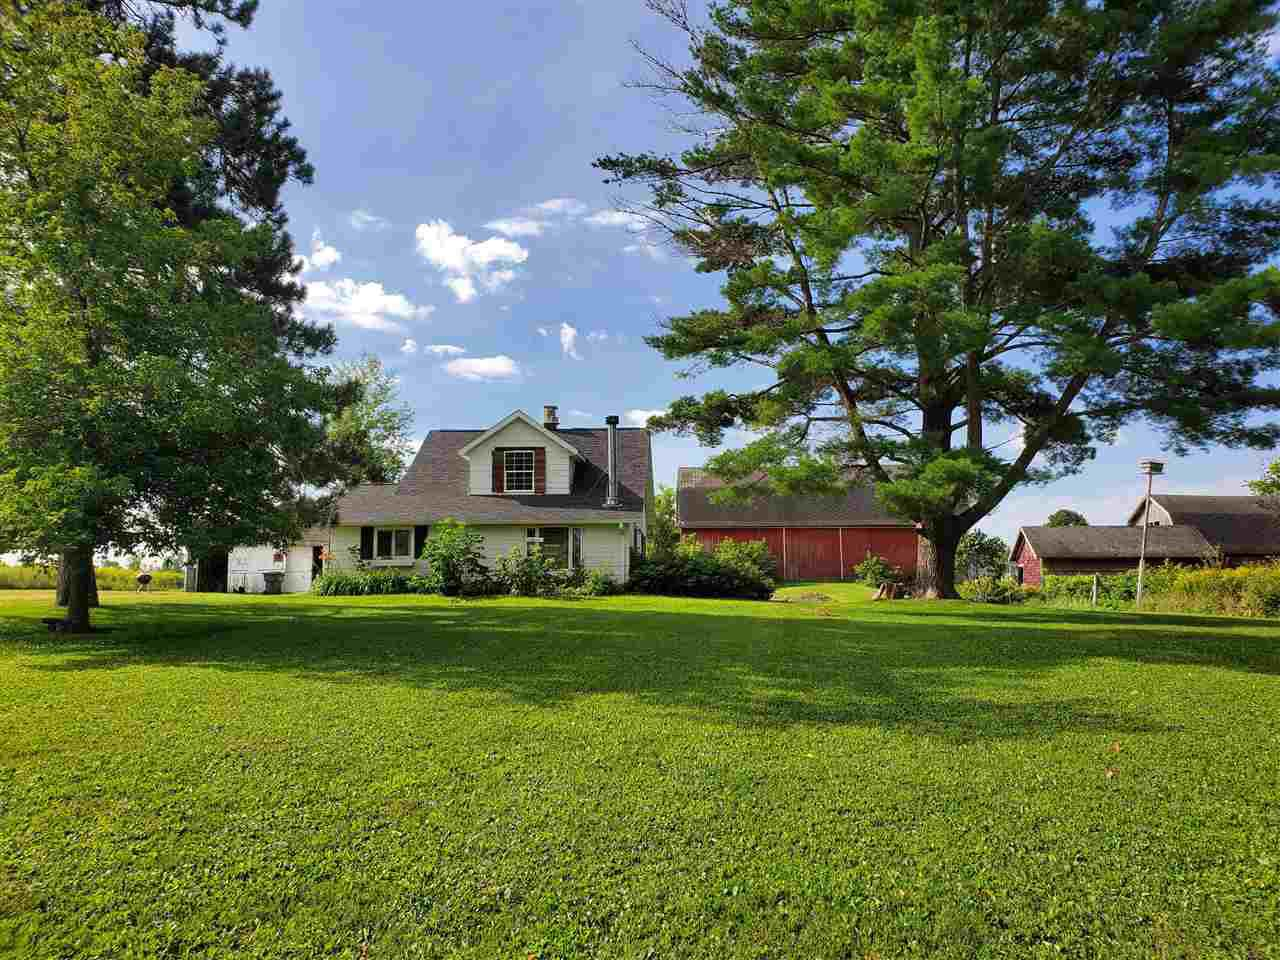 **MOTIVATED SELLER**FOR LAND?S SAKE! Check out this 4 BR 1 BA farmhouse set on 45.33 stunning acres just north of Stratford. This peaceful setting has it all! Home and buildings are situated on about 5 acres, 17-20 acres can be farmed or rented and over 15 wooded acres with a creek to harvest your own trophy deer! Step saver kitchen with plenty of natural light has a newer fridge, stove, and microwave. Private dining room with original hardwood floors and built-in hutch for your china. Large family room features wood-burning fireplace, refinished hardwood floors, and a french door that opens to a rear deck overlooking the property. Home also features main floor bedroom, bathroom, and mudroom with laundry. Upstairs you will find three additional bedrooms with nice closets and all with hardwood floors just waiting to be refinished! TLC and a few repairs are needed throughout the home but endless possibilities on a hard to find piece of property!,Additional features include mound system, newer roof on house, 200 amp, new water heater, and pressure tank. Interested in making your own maple syrup? Plenty of maples to tap to start your new hobby! Huge barn on property could be used to start up the hobby farm you?ve always wanted, goats, sheep, horses, you name it! Close to Big Rapids Park and centrally located between Marshfield and Wausau. Tax Pin: 020-2703-031-0994 020-2703-031-0992